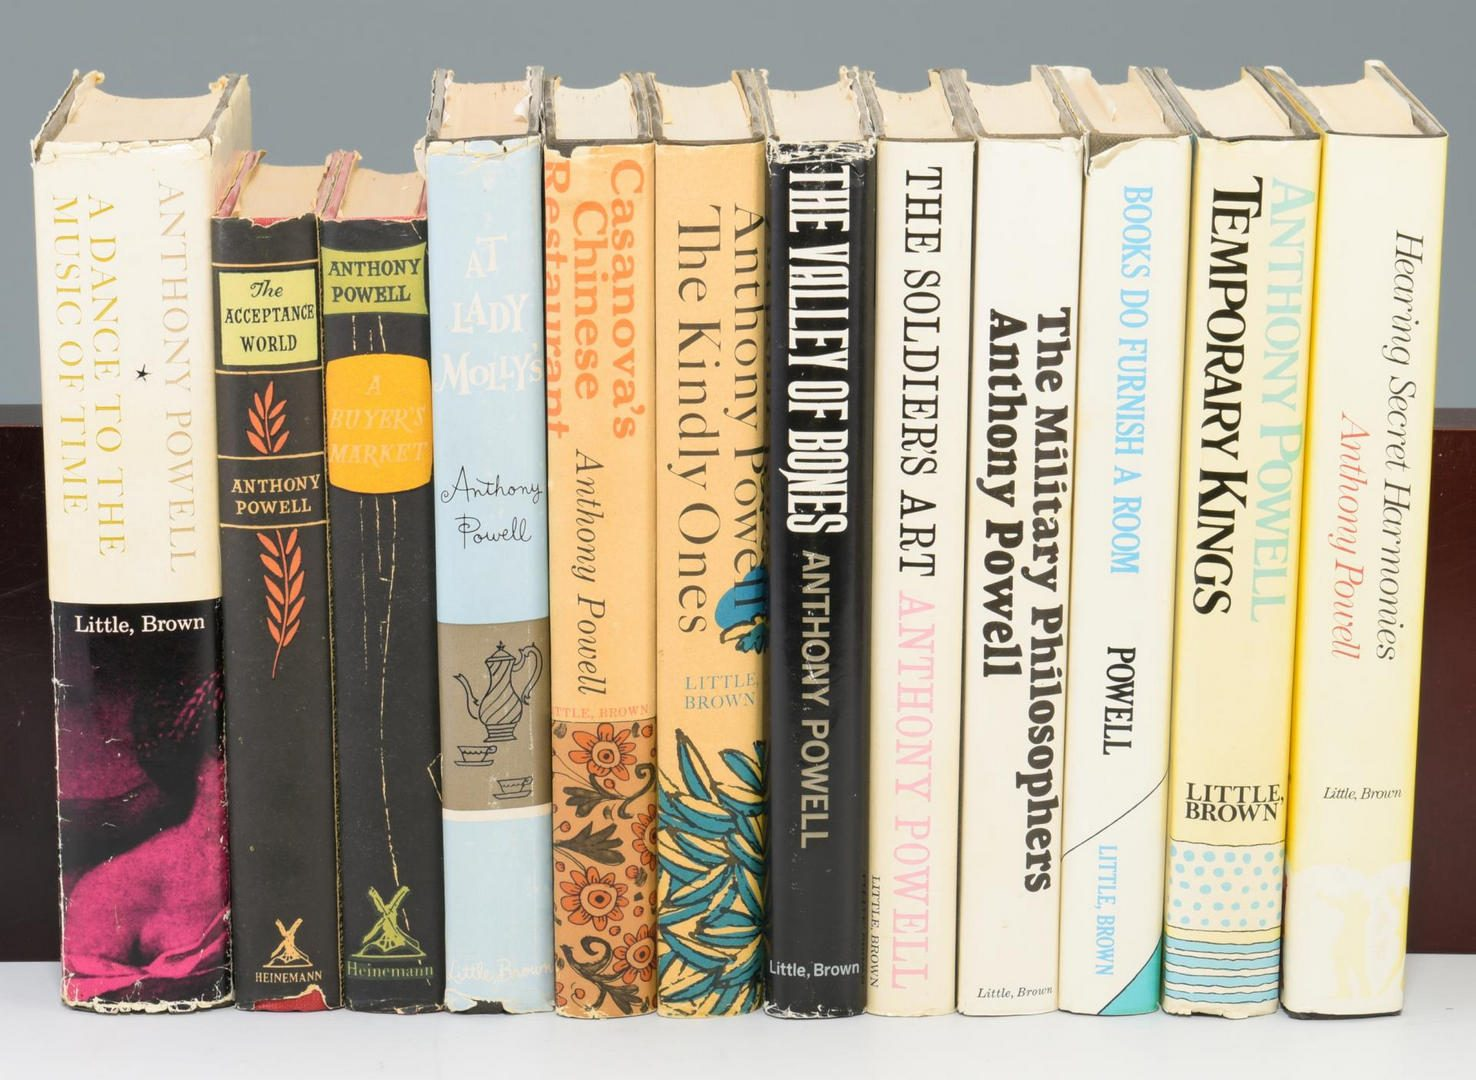 Lot 188: Lot of 22 Books by Anthony Powell